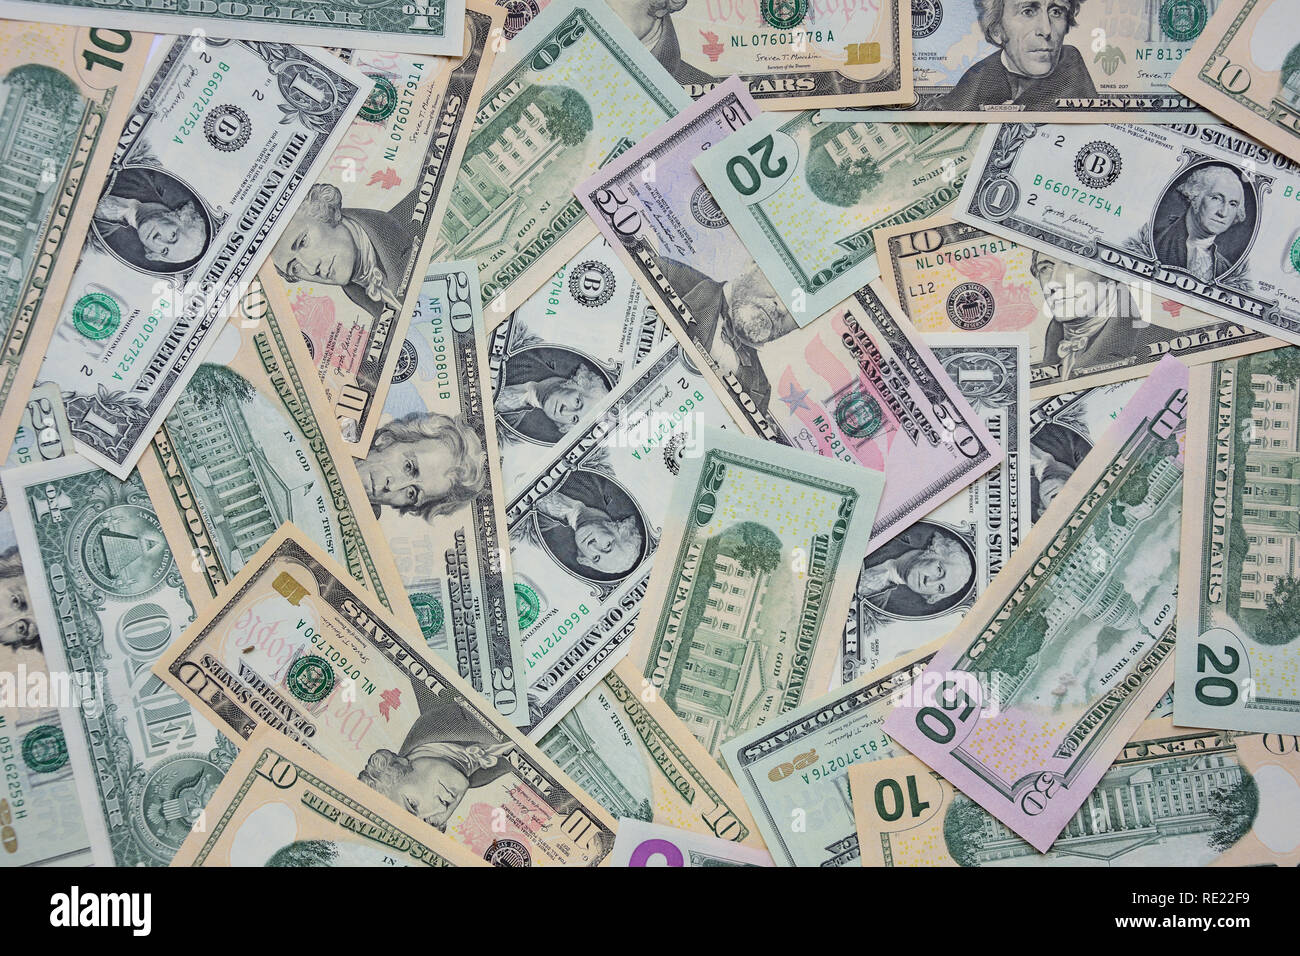 Selection of US dollars, Stanwell Moor, Surrey, England, United Kingdom - Stock Image